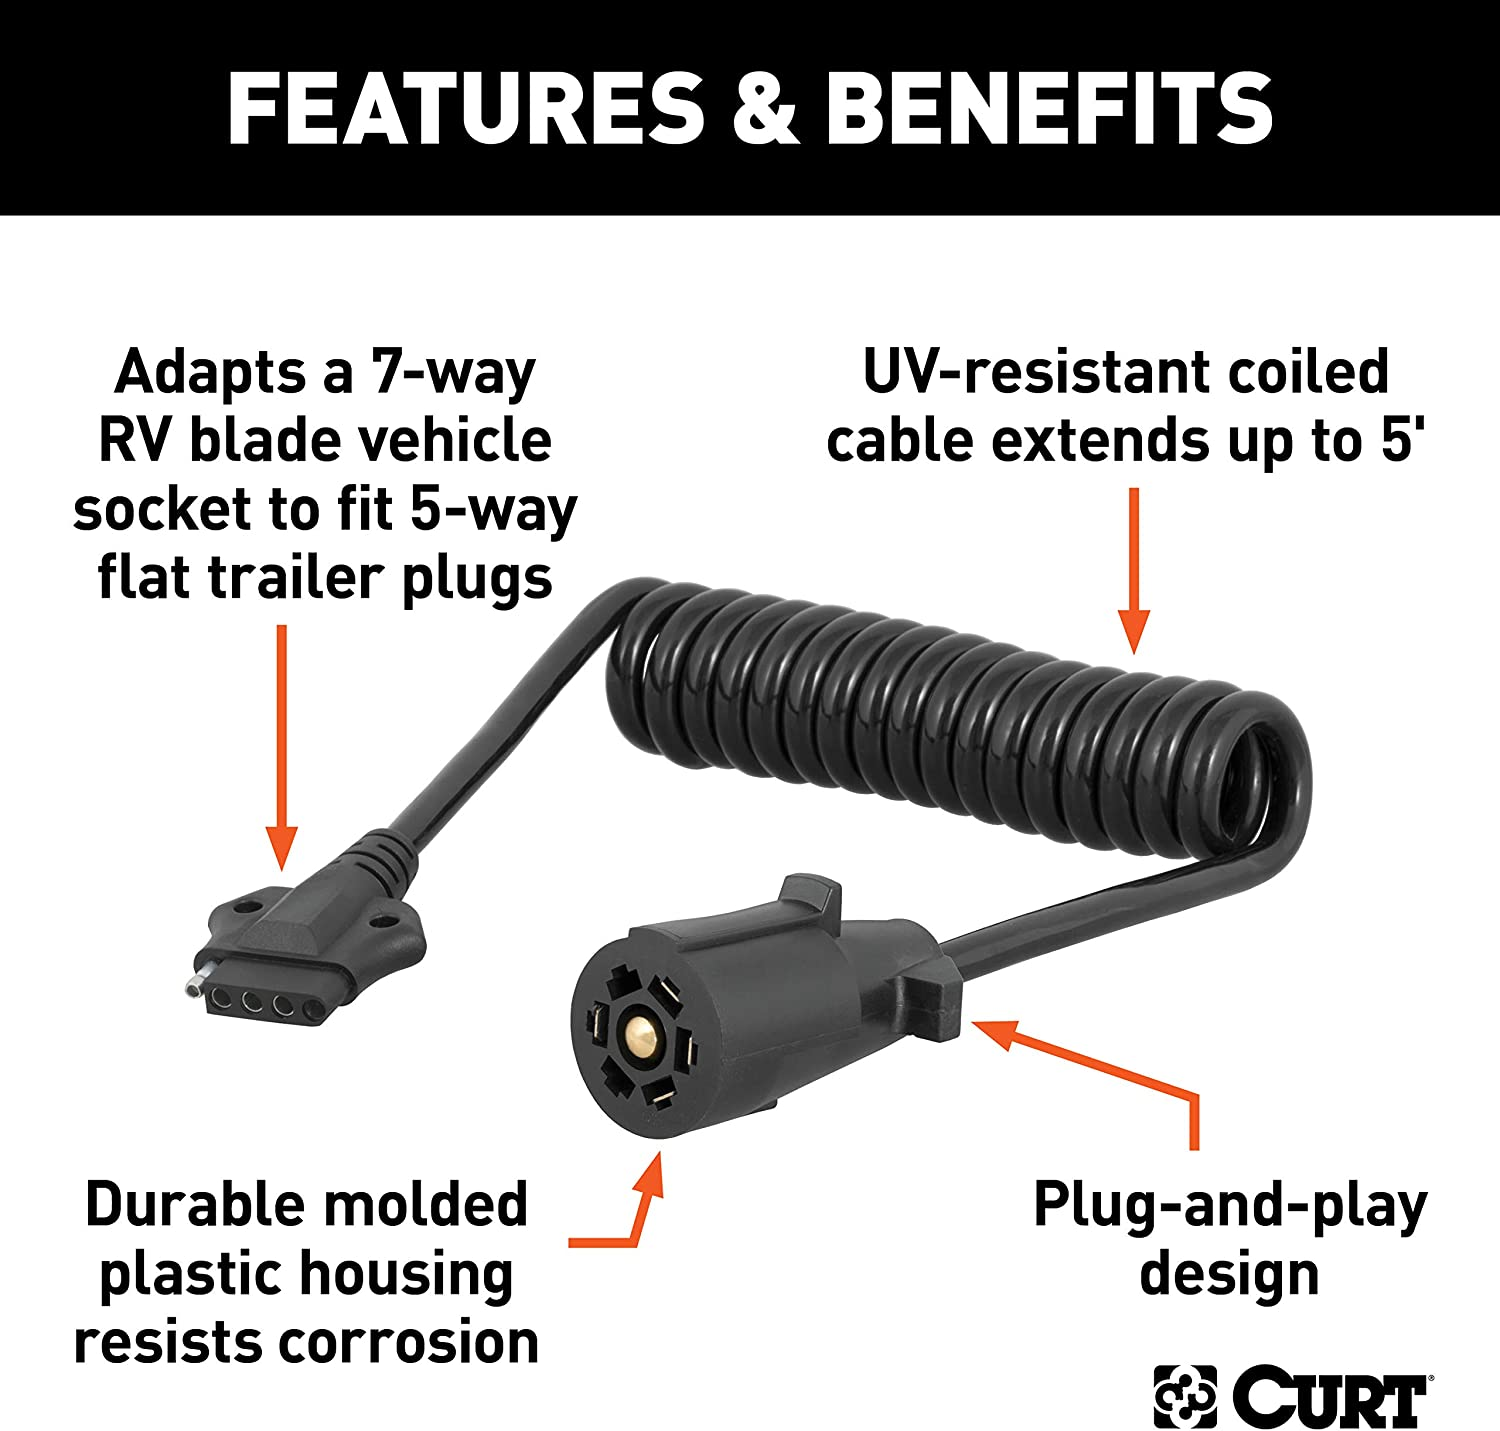 CURT 57271 Towing Electrical Adapter Harness 7-Way RV Blade Vehicle Side to 4-Way Flat Trailer Side